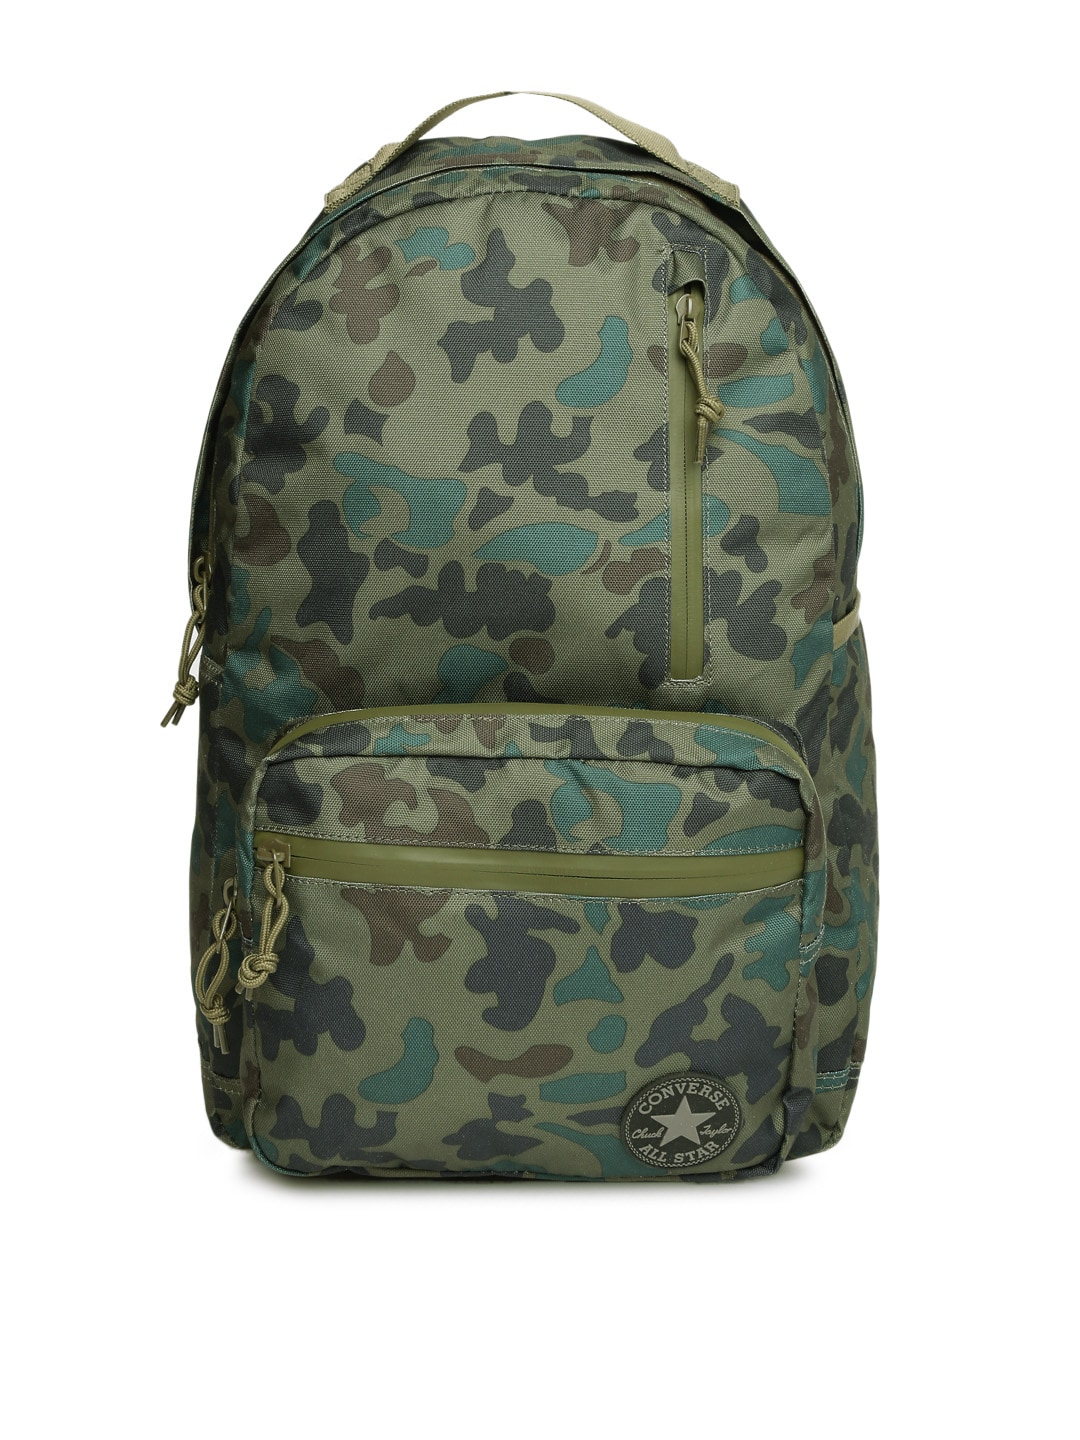 376b8fe1a9 Converse Backpacks - Buy Converse Backpacks Online in India